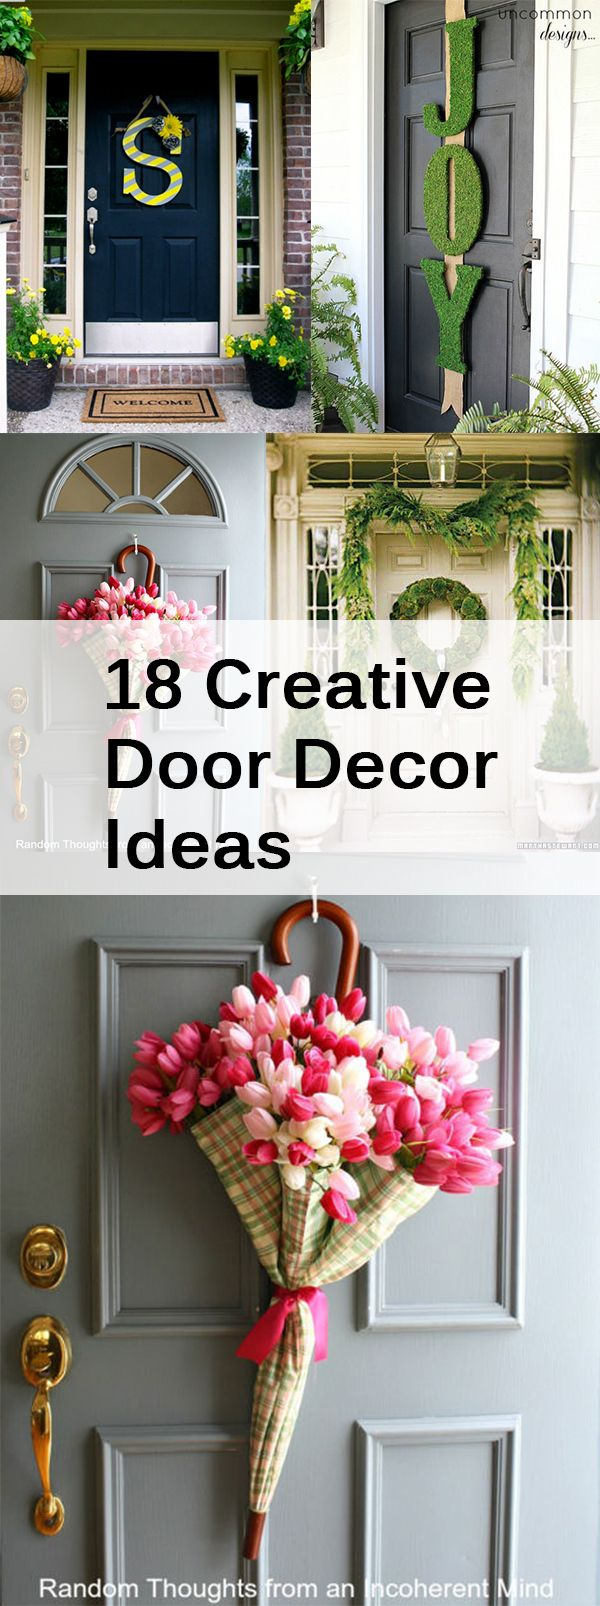 Door designing is really not something new. This is one way of welcoming your guests, it shows your warm personality as this is the first thing that they will see before entering your home. It adds character and most of all, it adds beauty to your home. Delight yourselves and your guests into these different kinds of door designs, and maybe you can do this at your doors! Take a look and tell us if you like it.